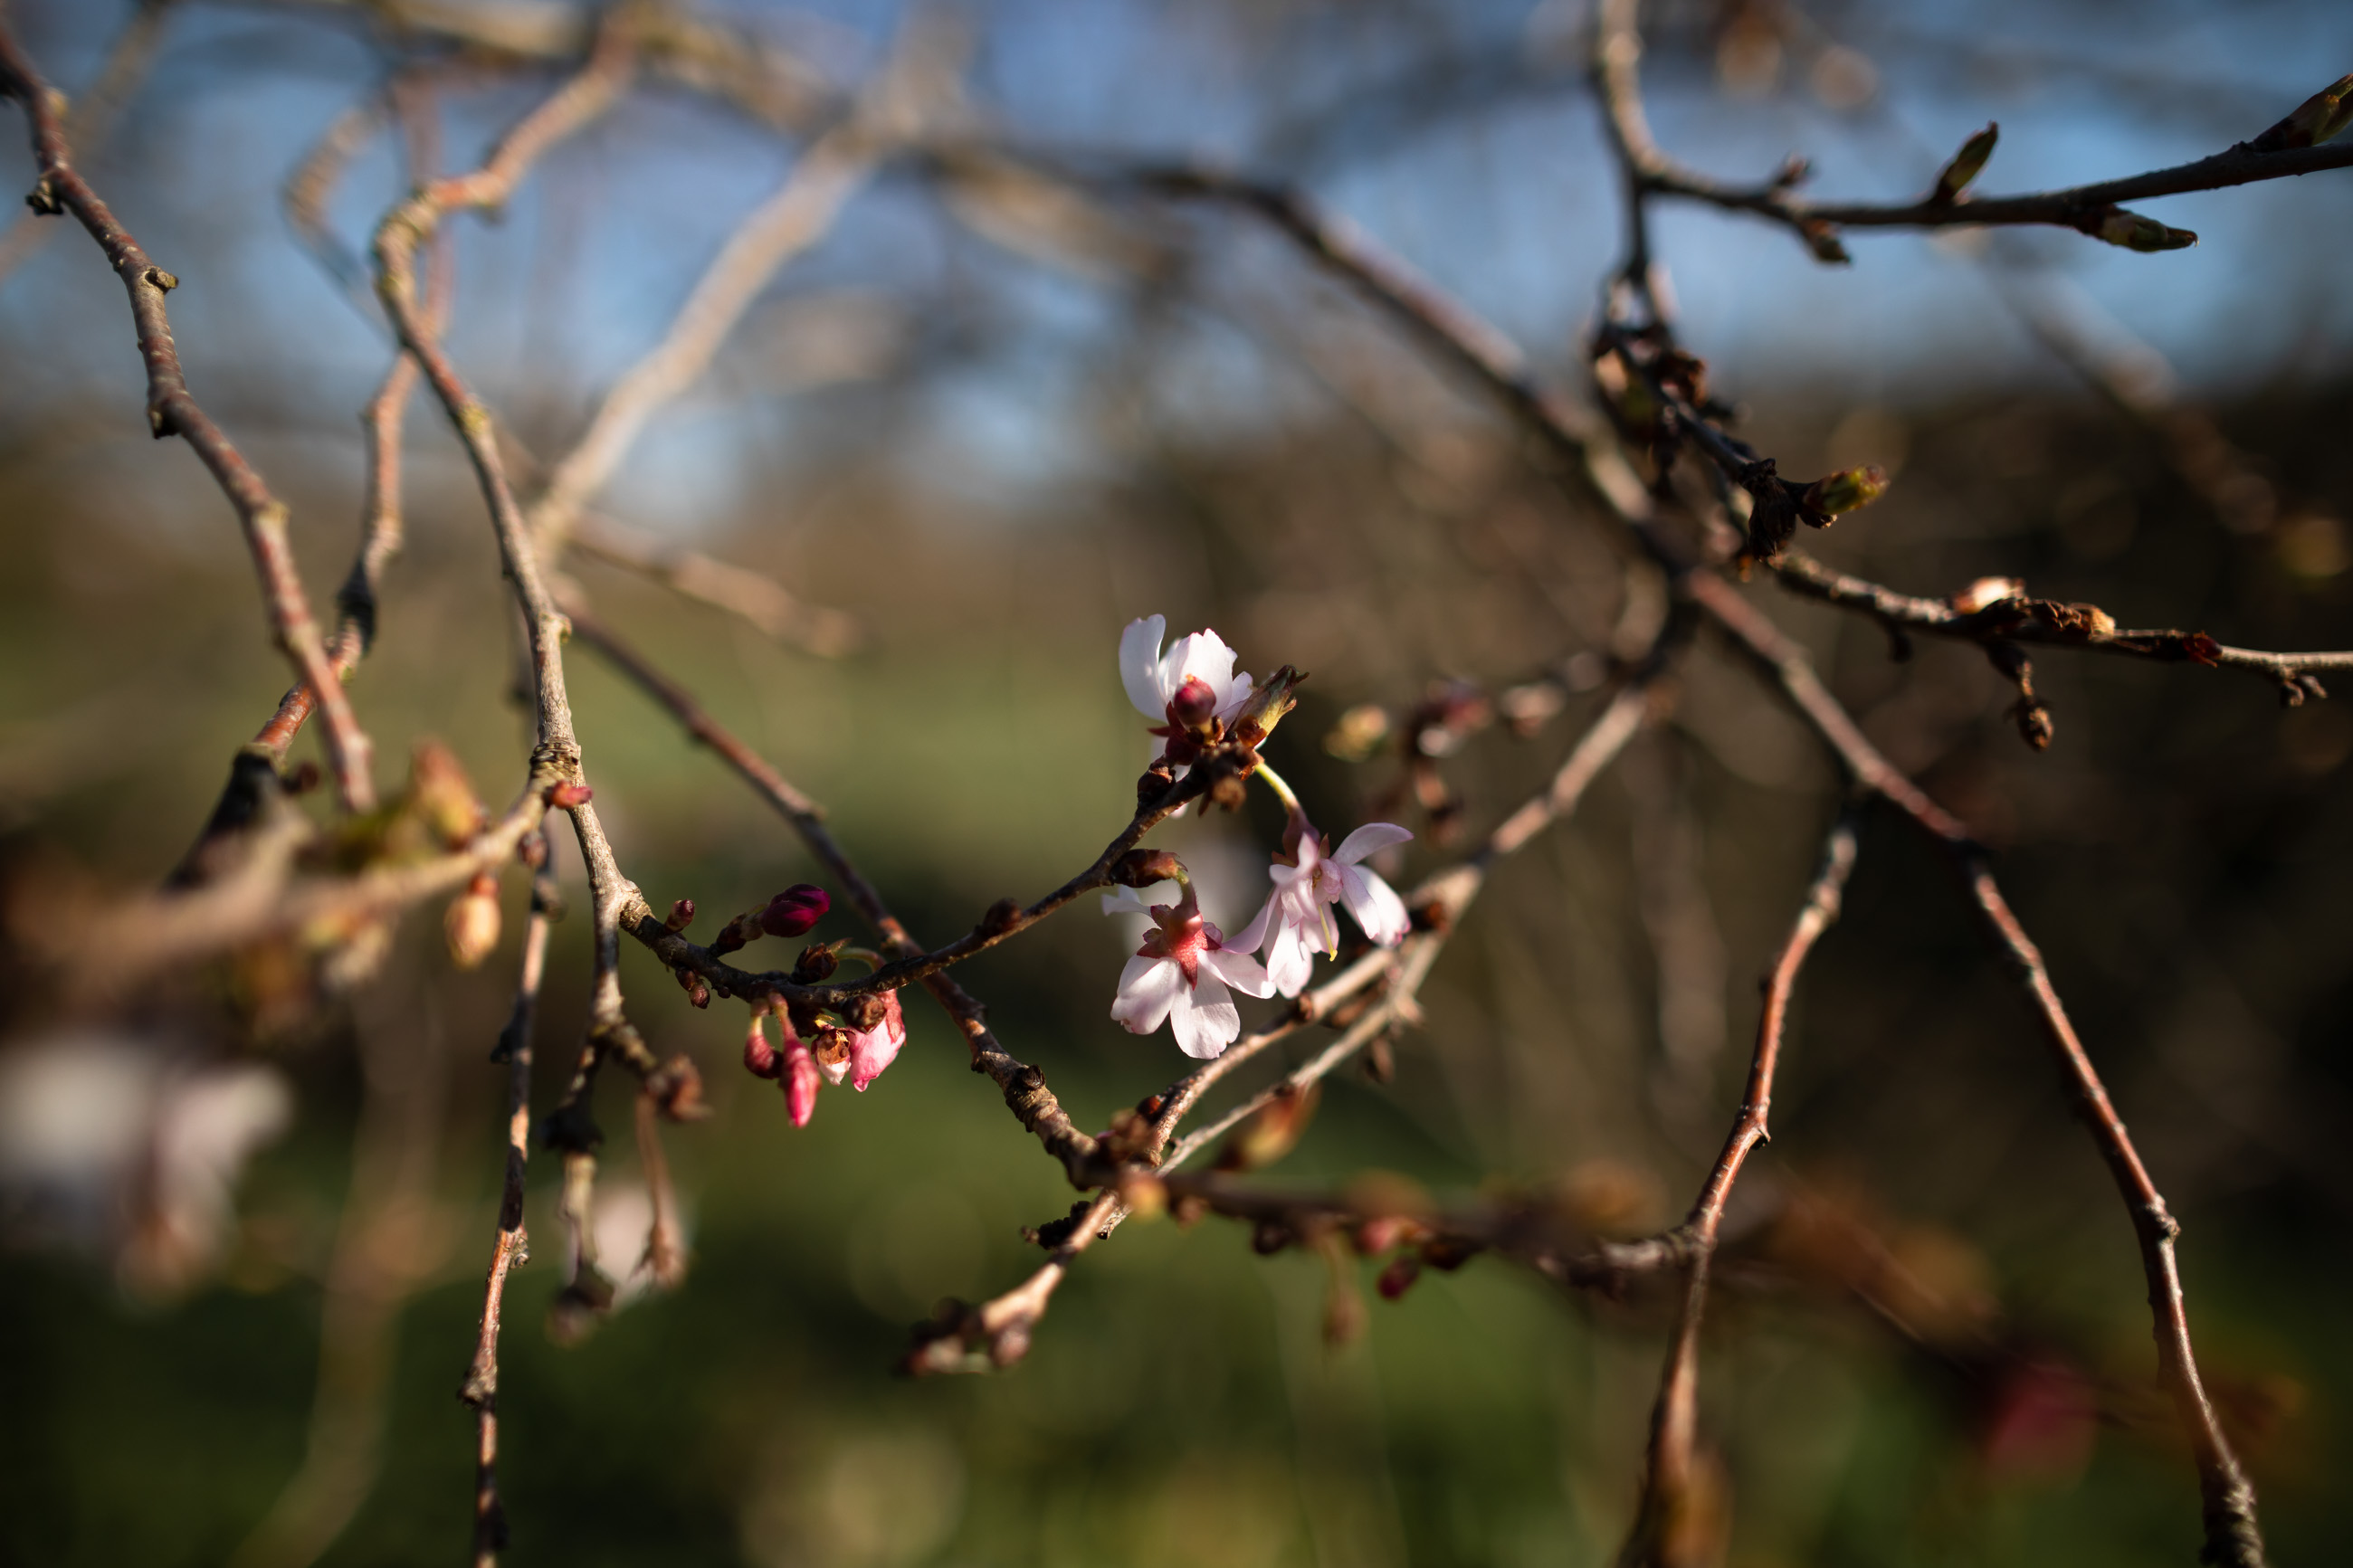 Peach branch, with flowers bloomings